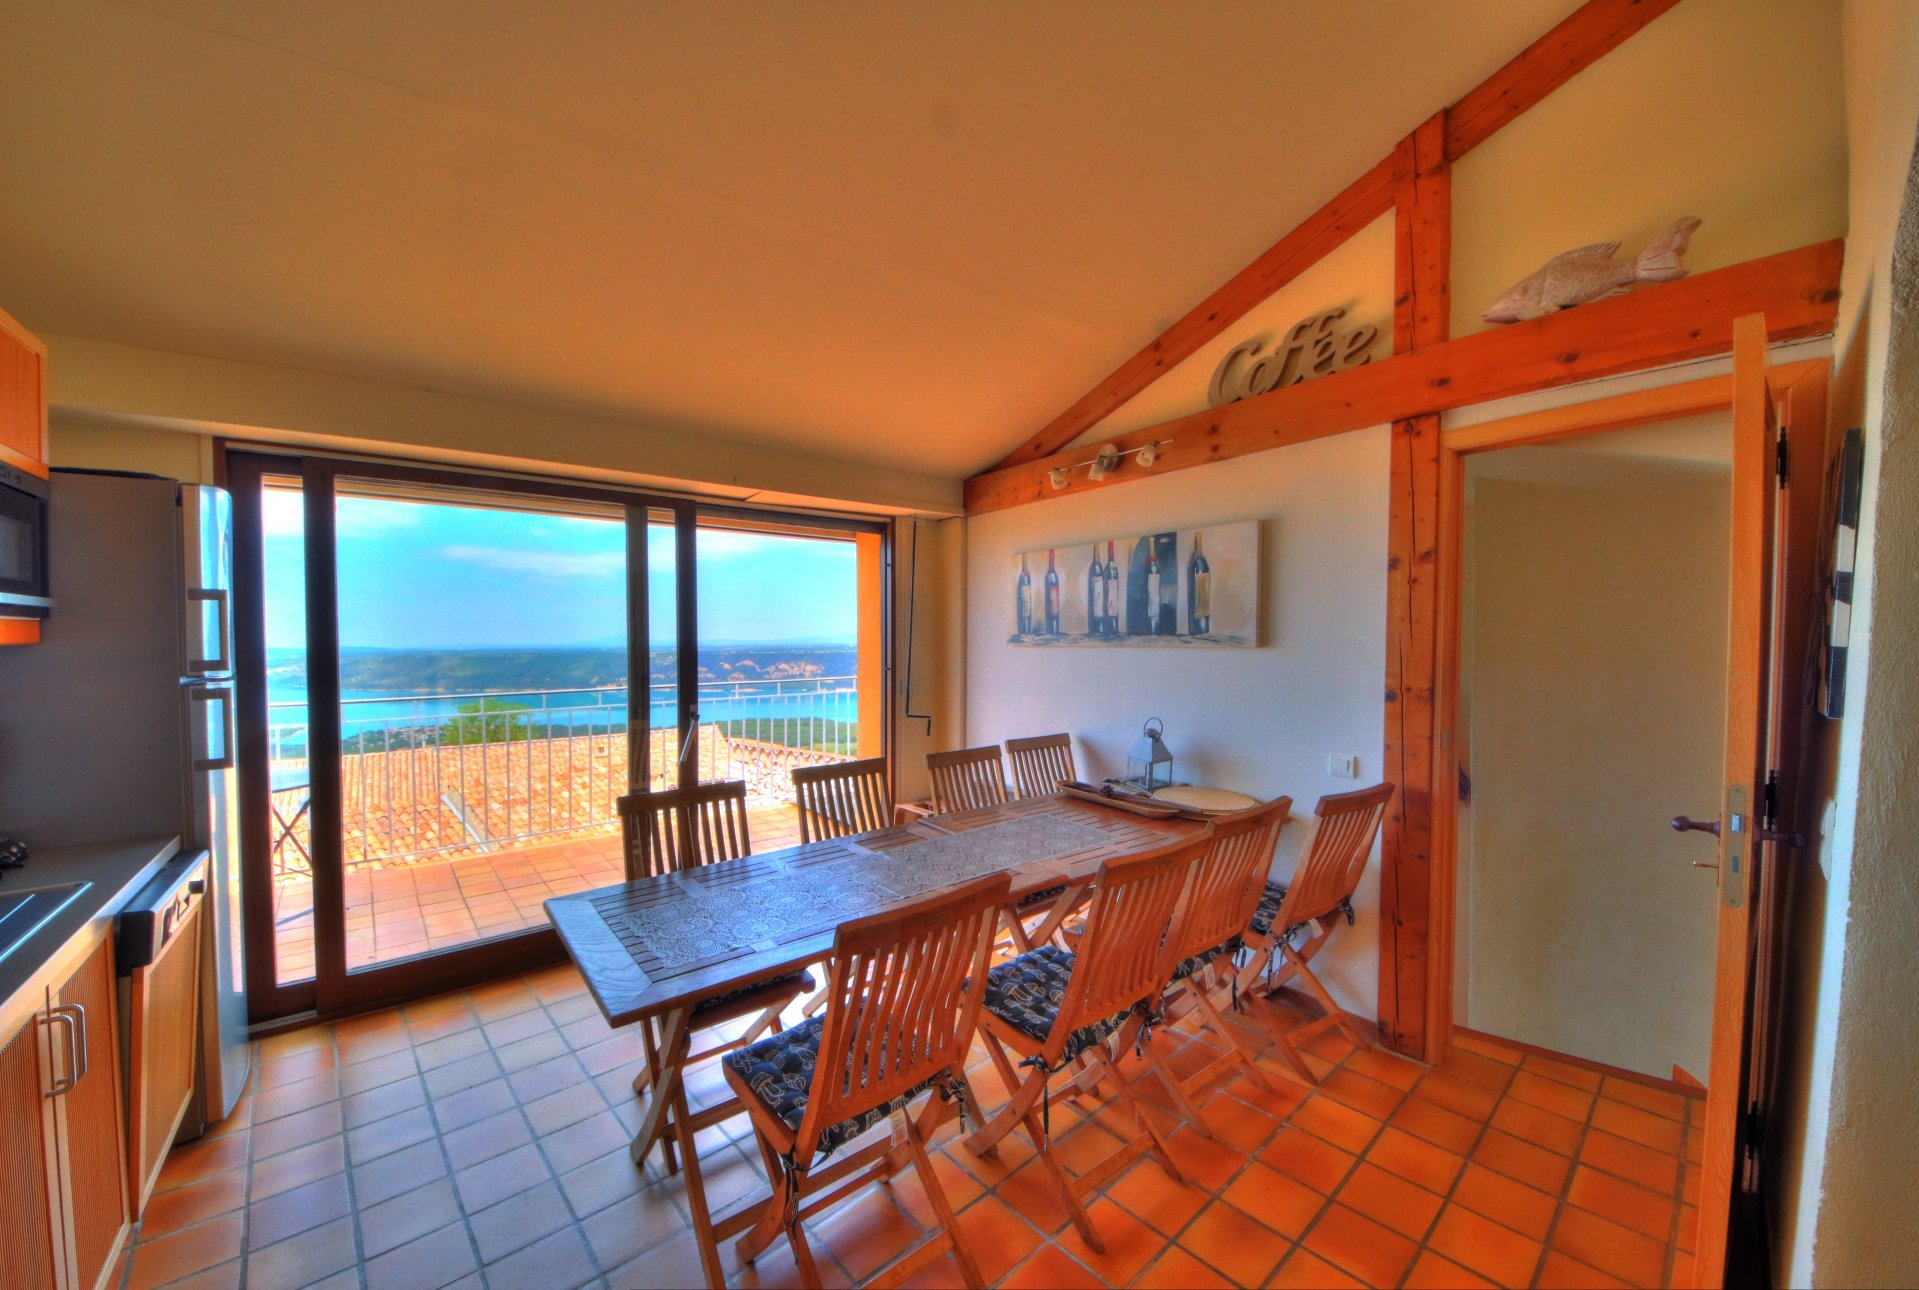 equipped kitchen, bright with terrace access, panoramic view of the lake and the castle